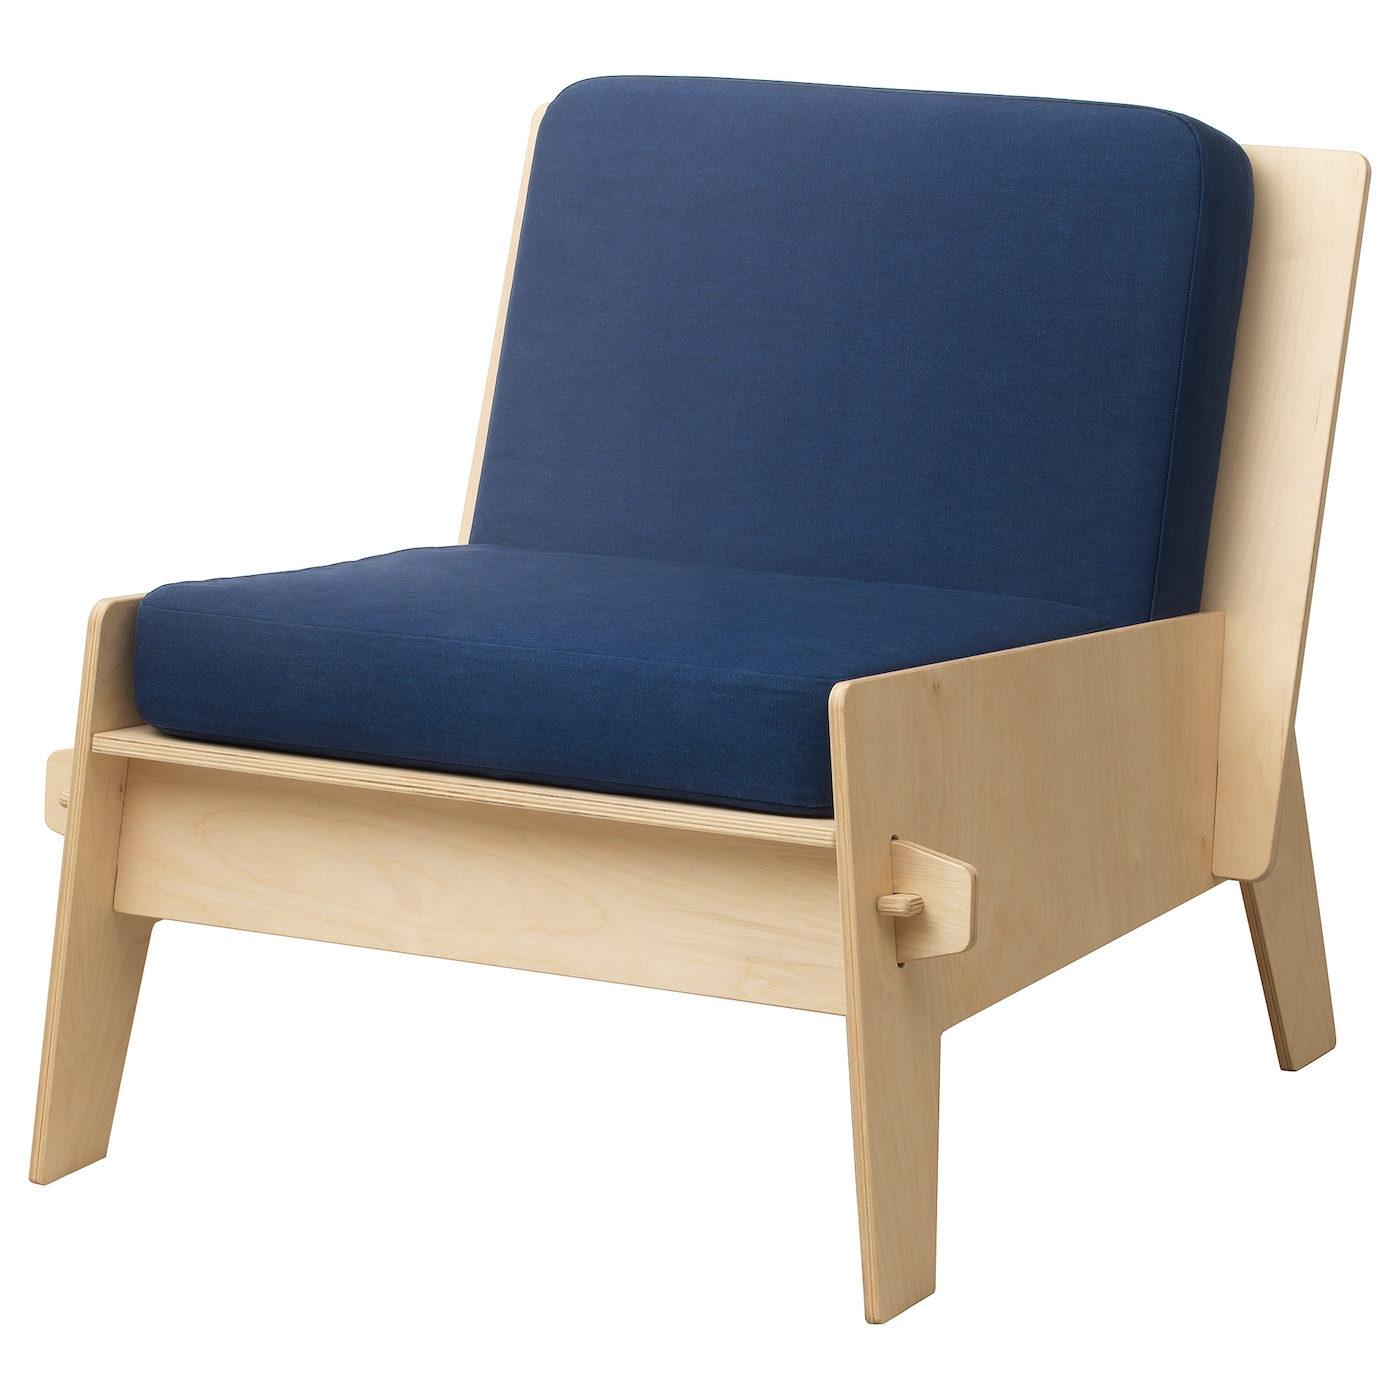 IKEA ÖVERALLT easy chair with cushions The cushion is reversible and has two identical sides to use.